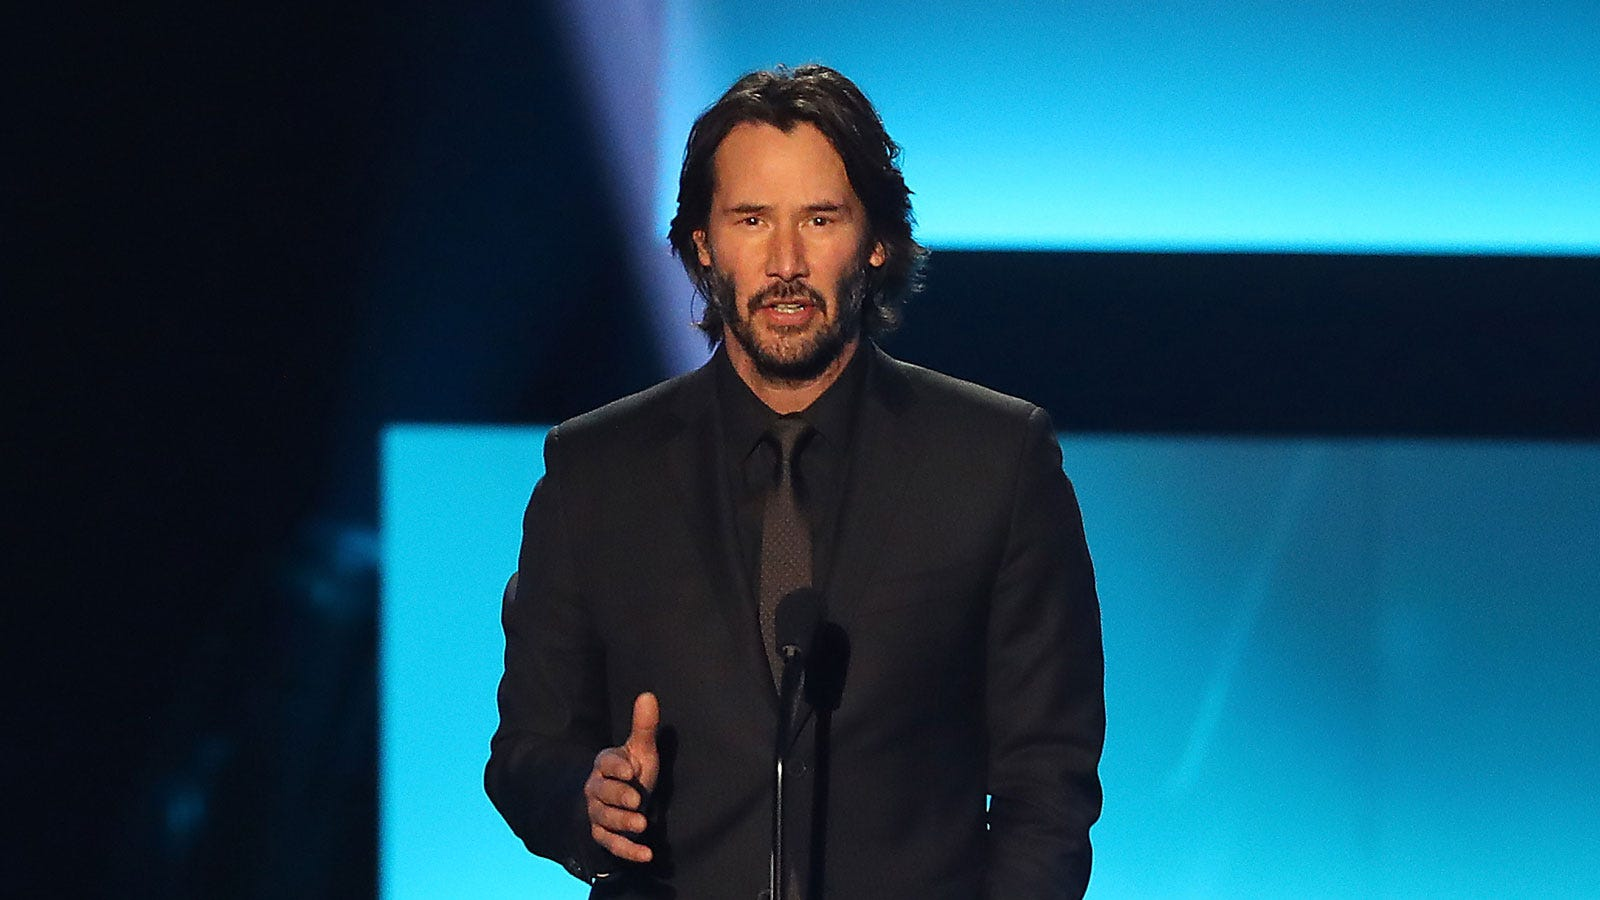 Keanu Reeves On Why He Acts: 'I Don't Have Anything Better ...